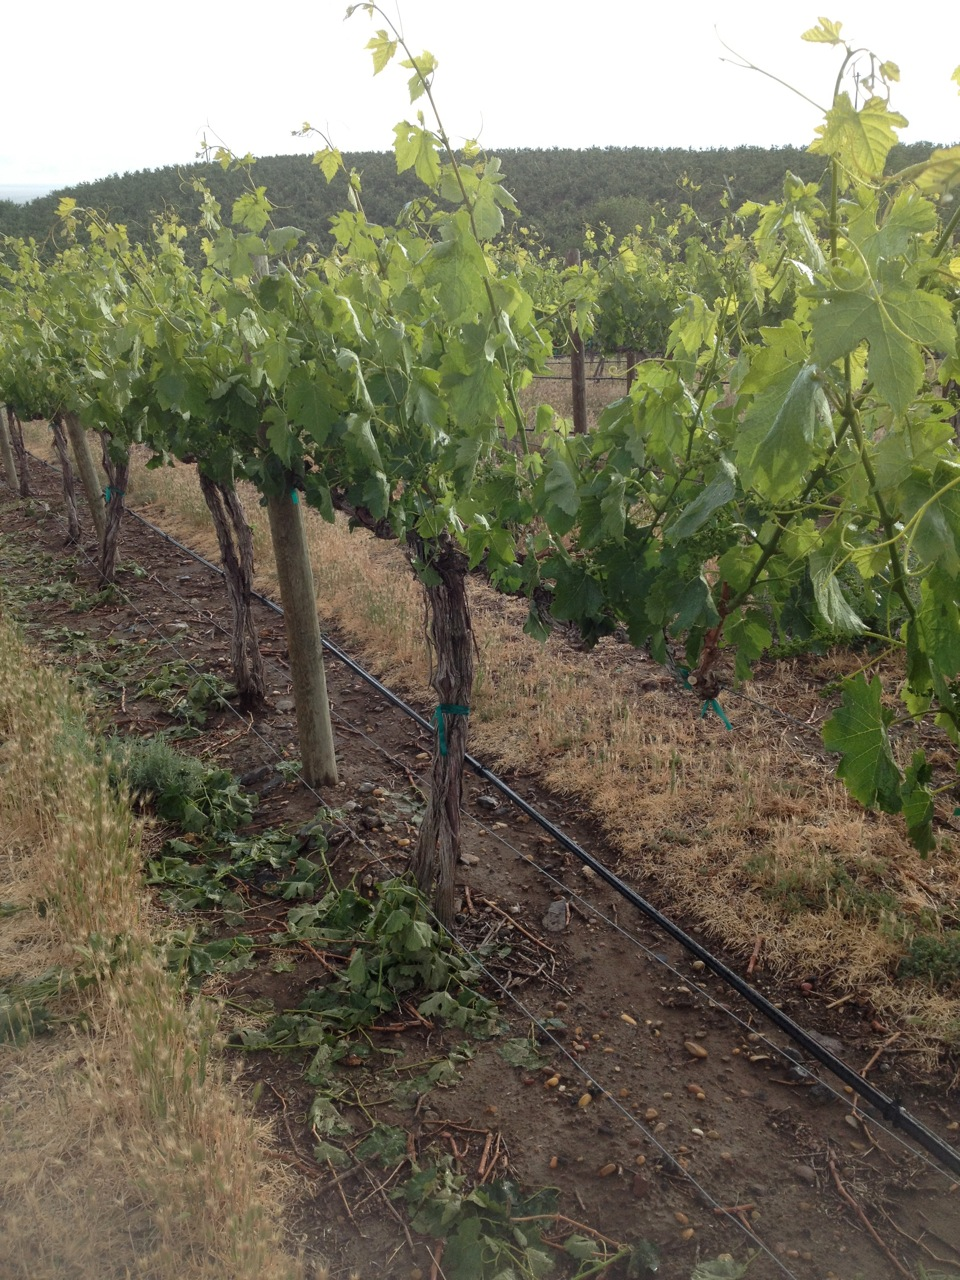 Shoot thinning at DuBrul Vineyard